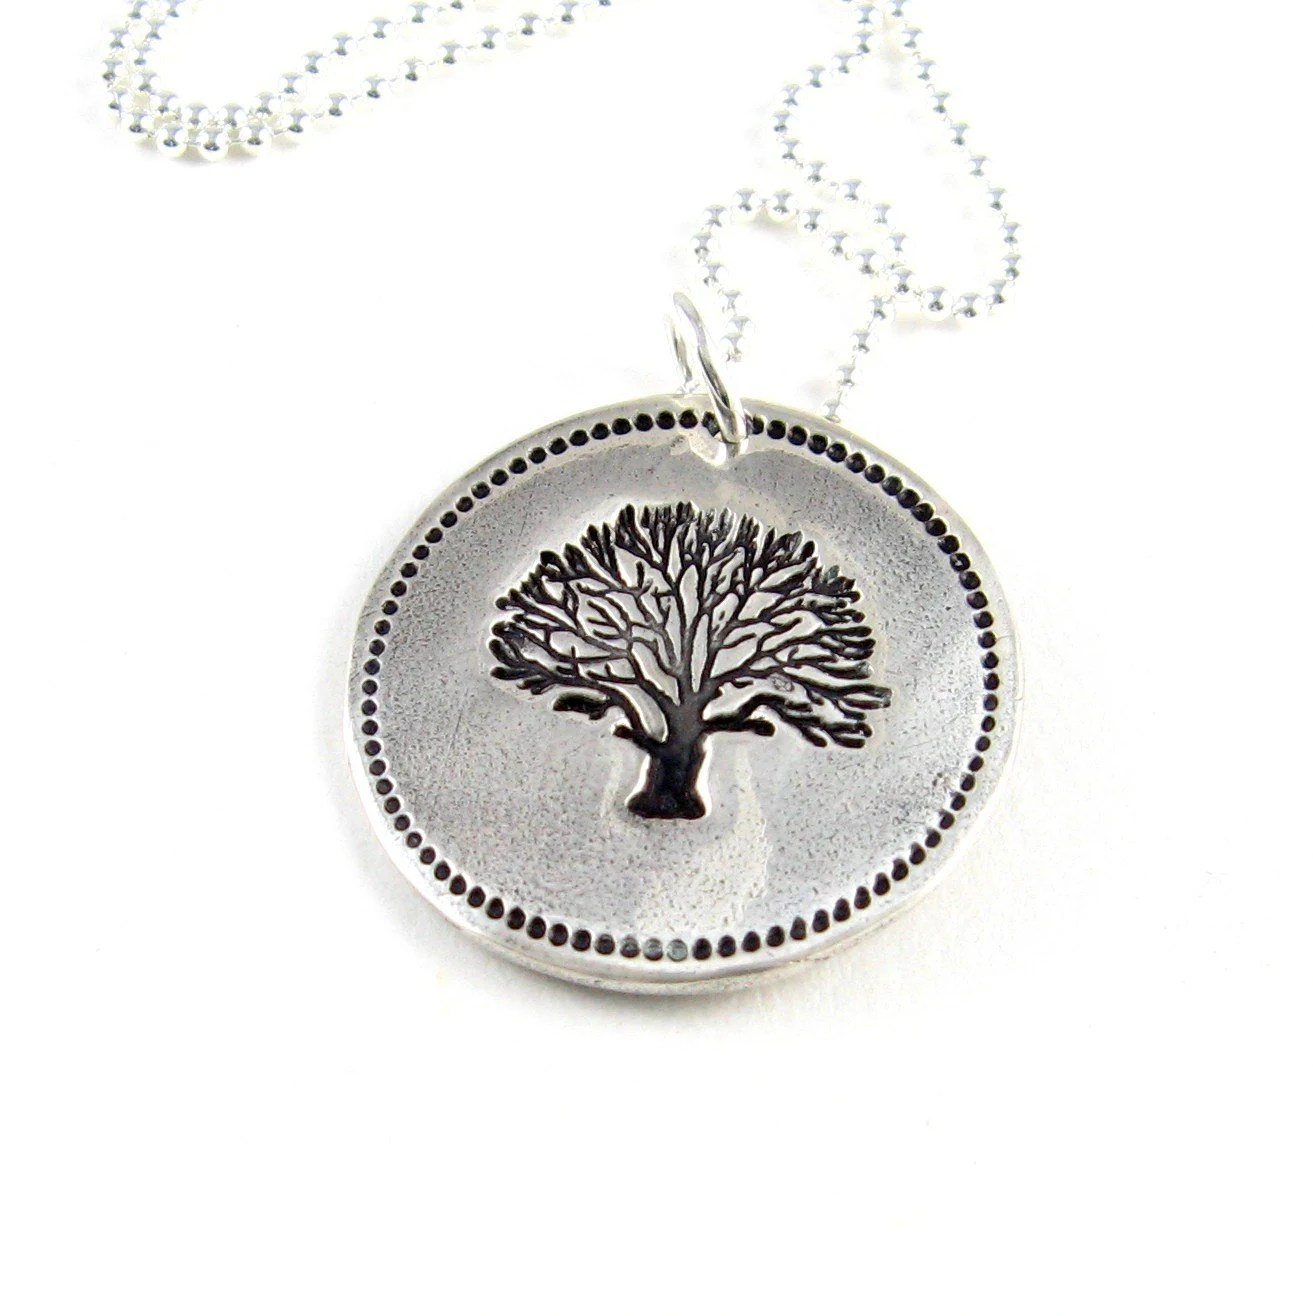 Tree of Life Necklace Fine Silver PMC Artisan Pendant Hand Stamped Tree of Life Under 75 - newhopebeading